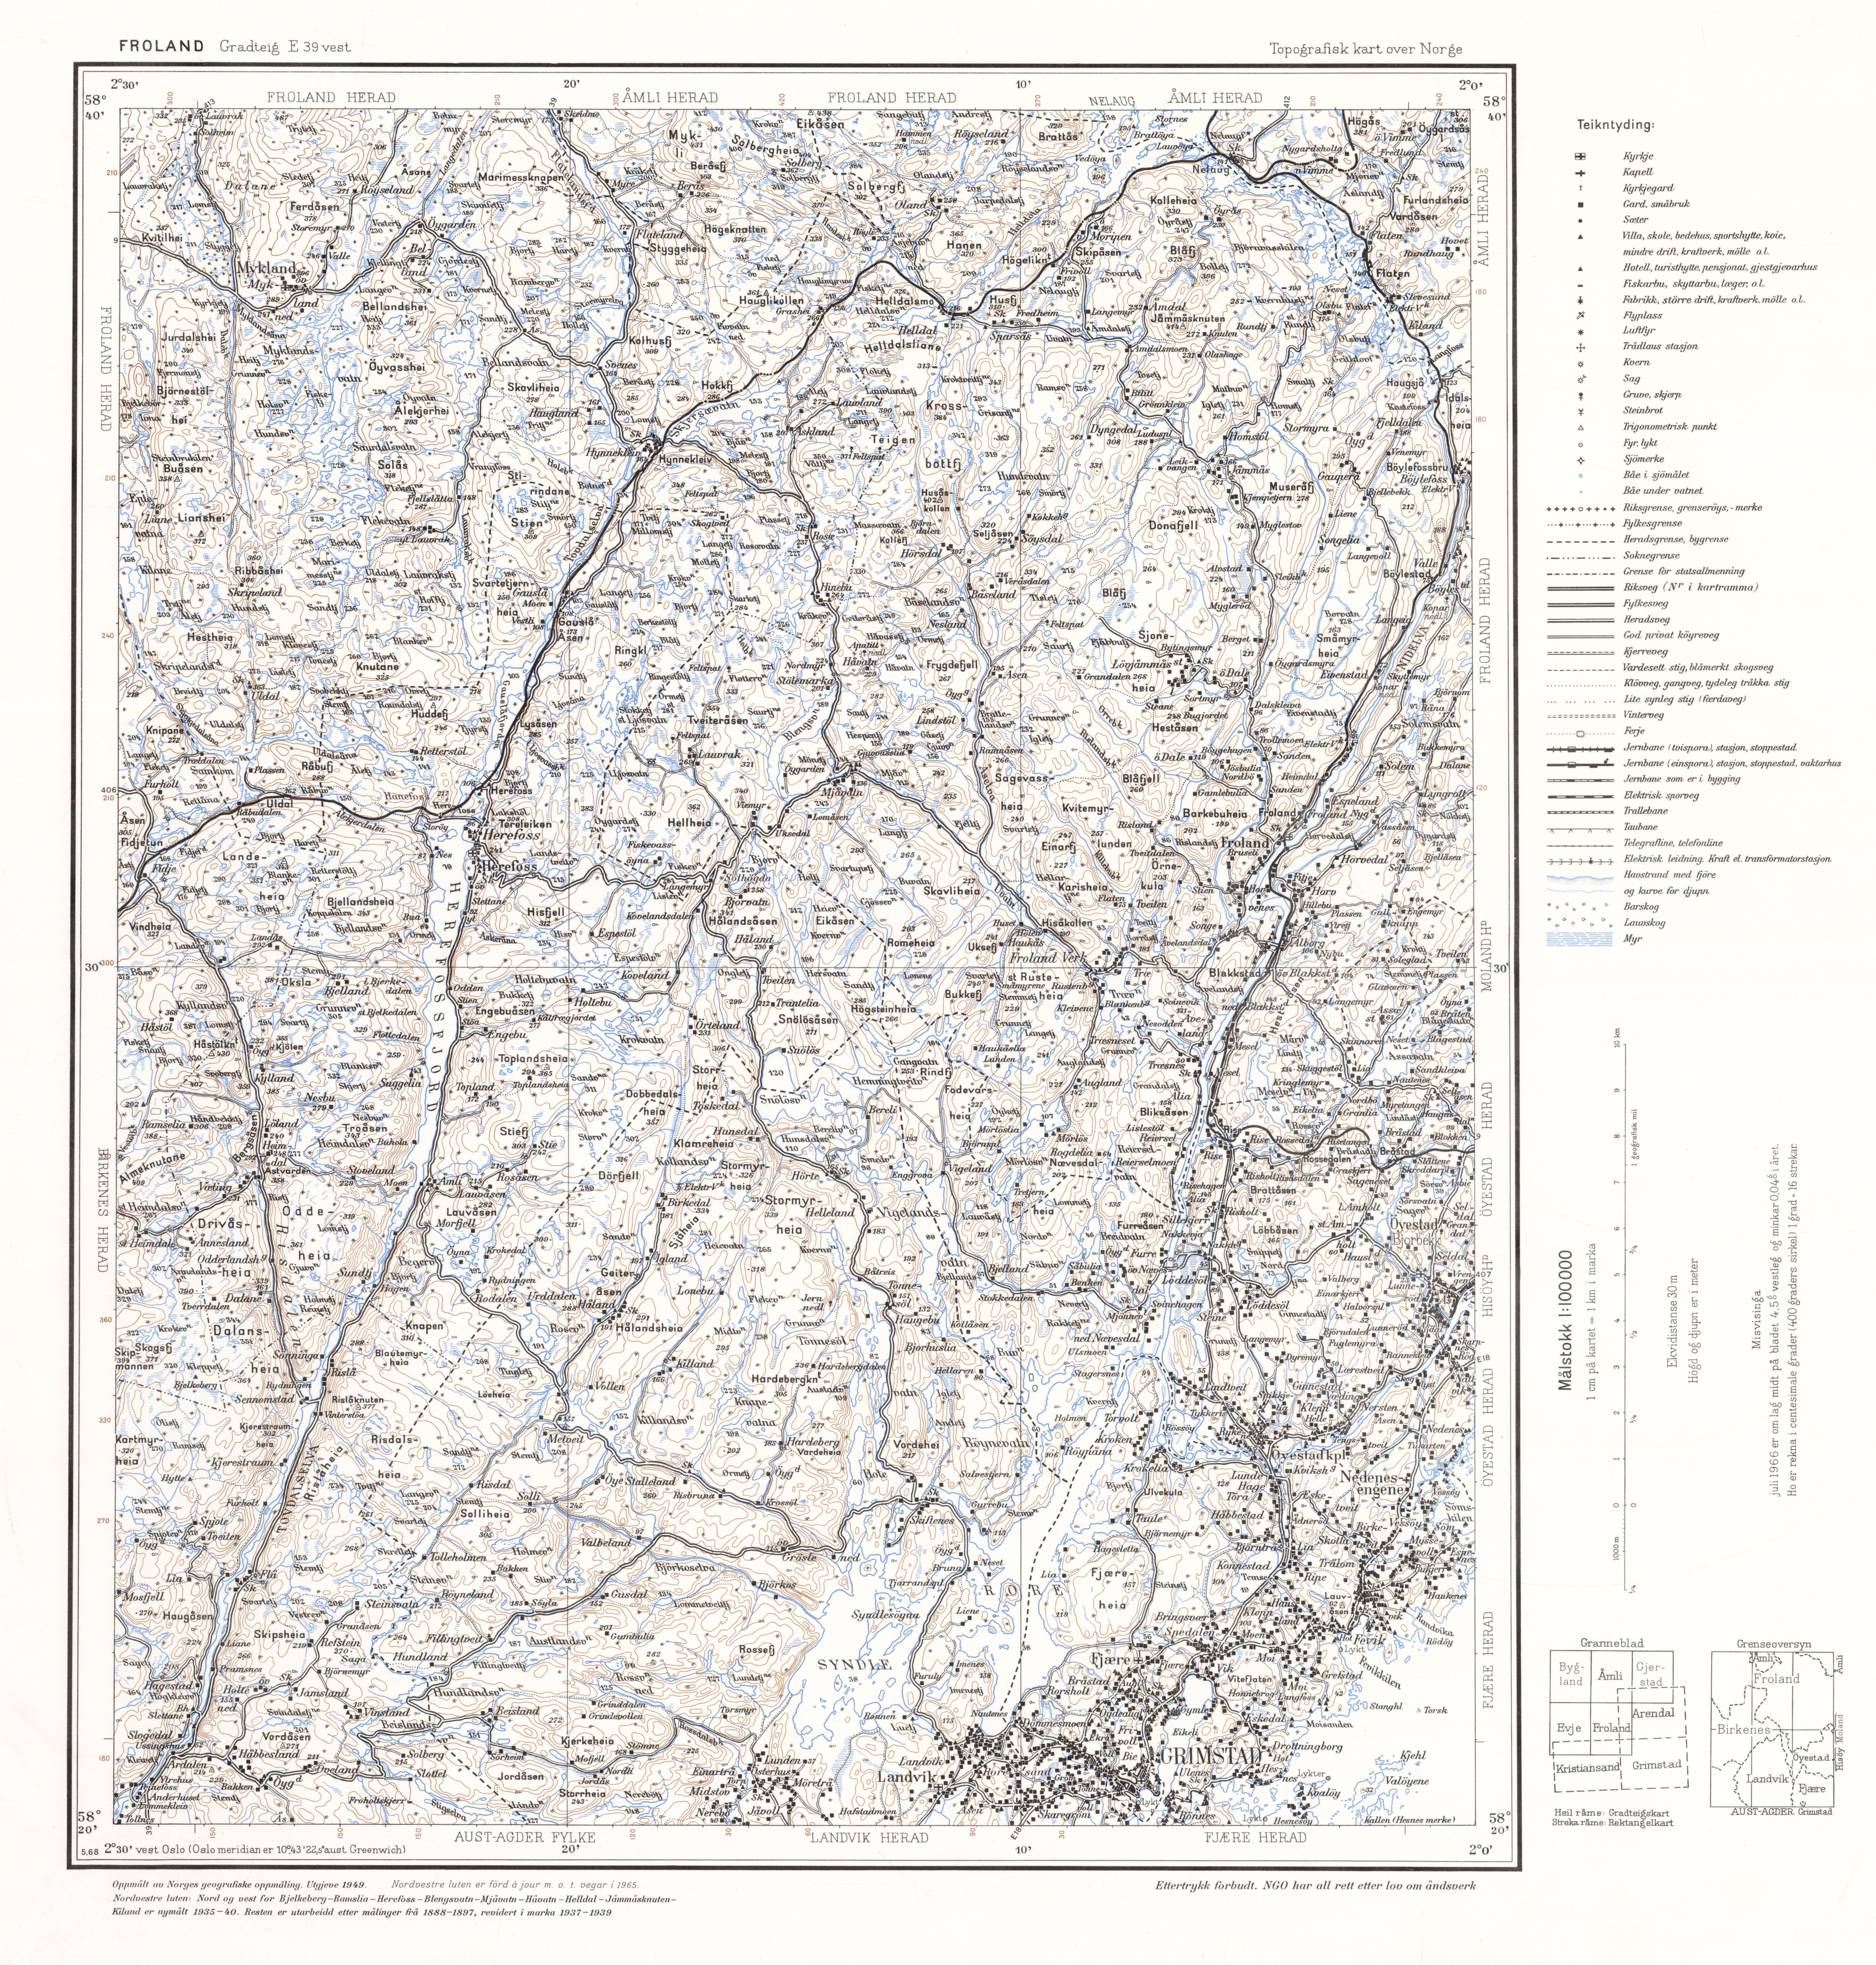 FileTopographic Map Of Norway E Vest Froland Jpg - Norway map fylke